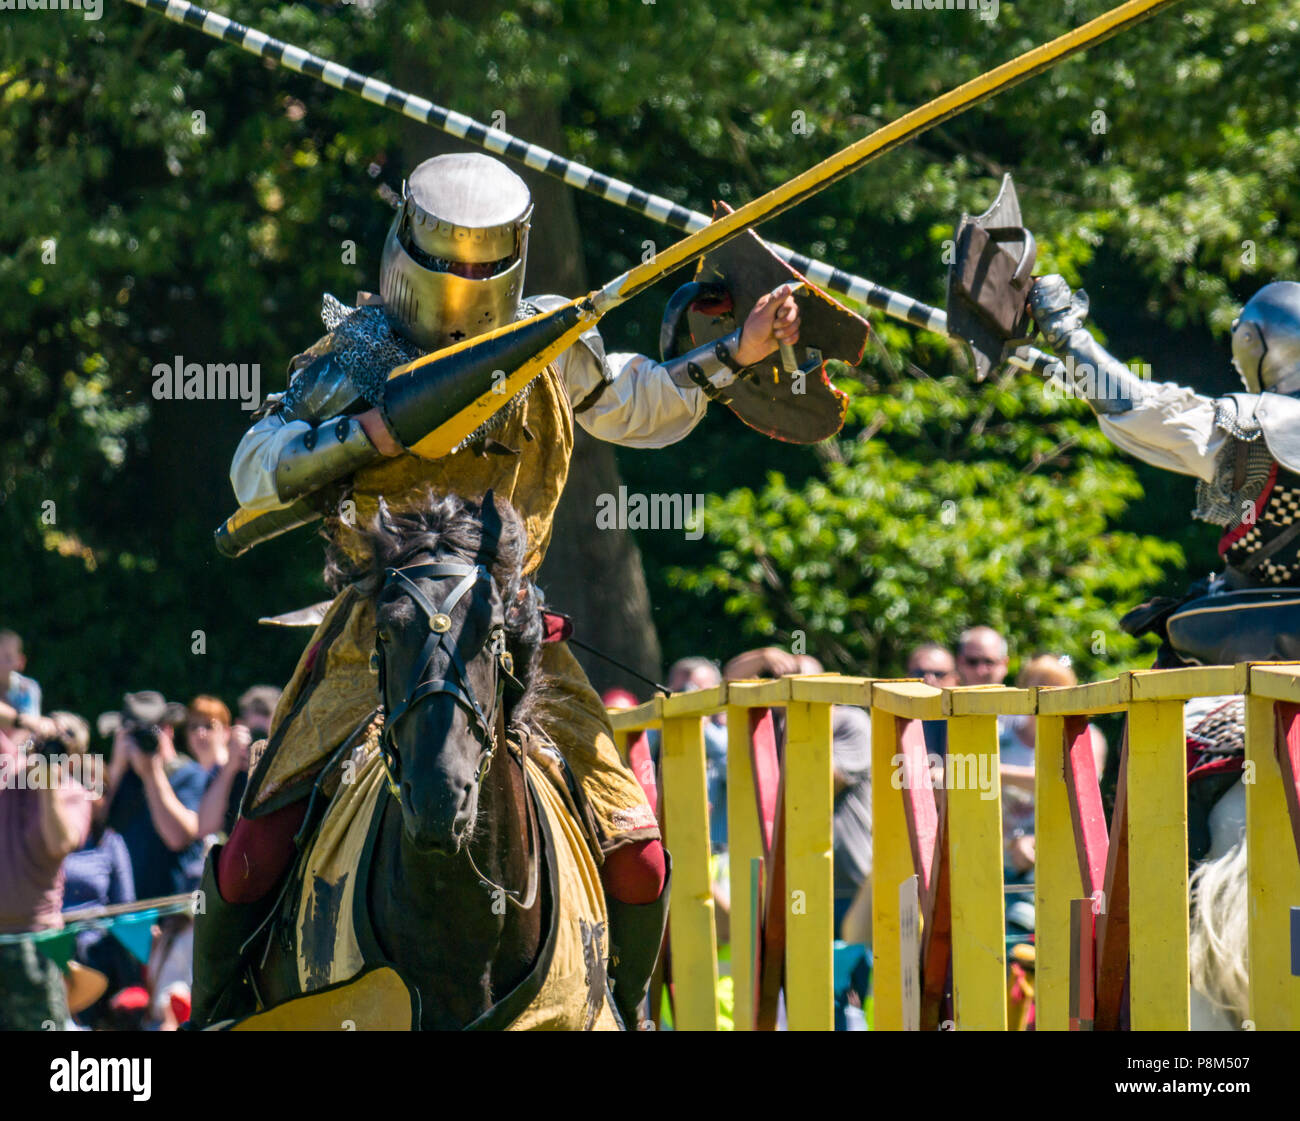 Medieval jousting, Linlithgow Palace, Scotland, UK. HES summer entertainment by Les Amis D'Onno equine stunt team. Knights on horses joust with lances - Stock Image